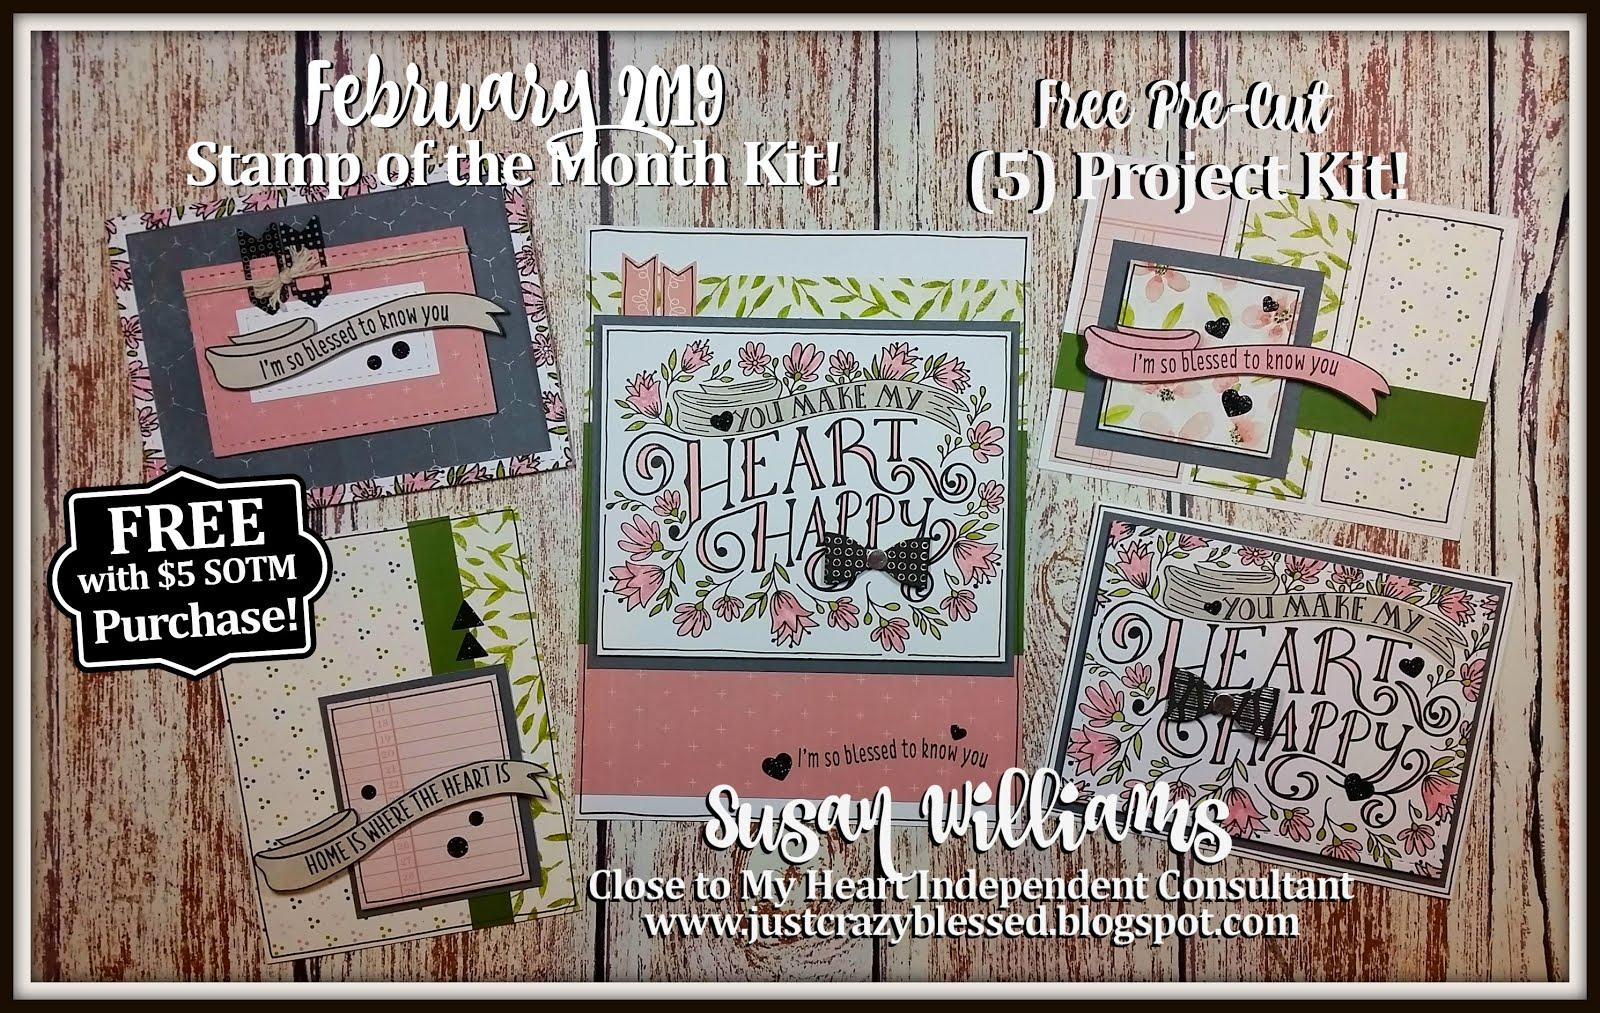 February 2019 Stamp of the Month Workshop!